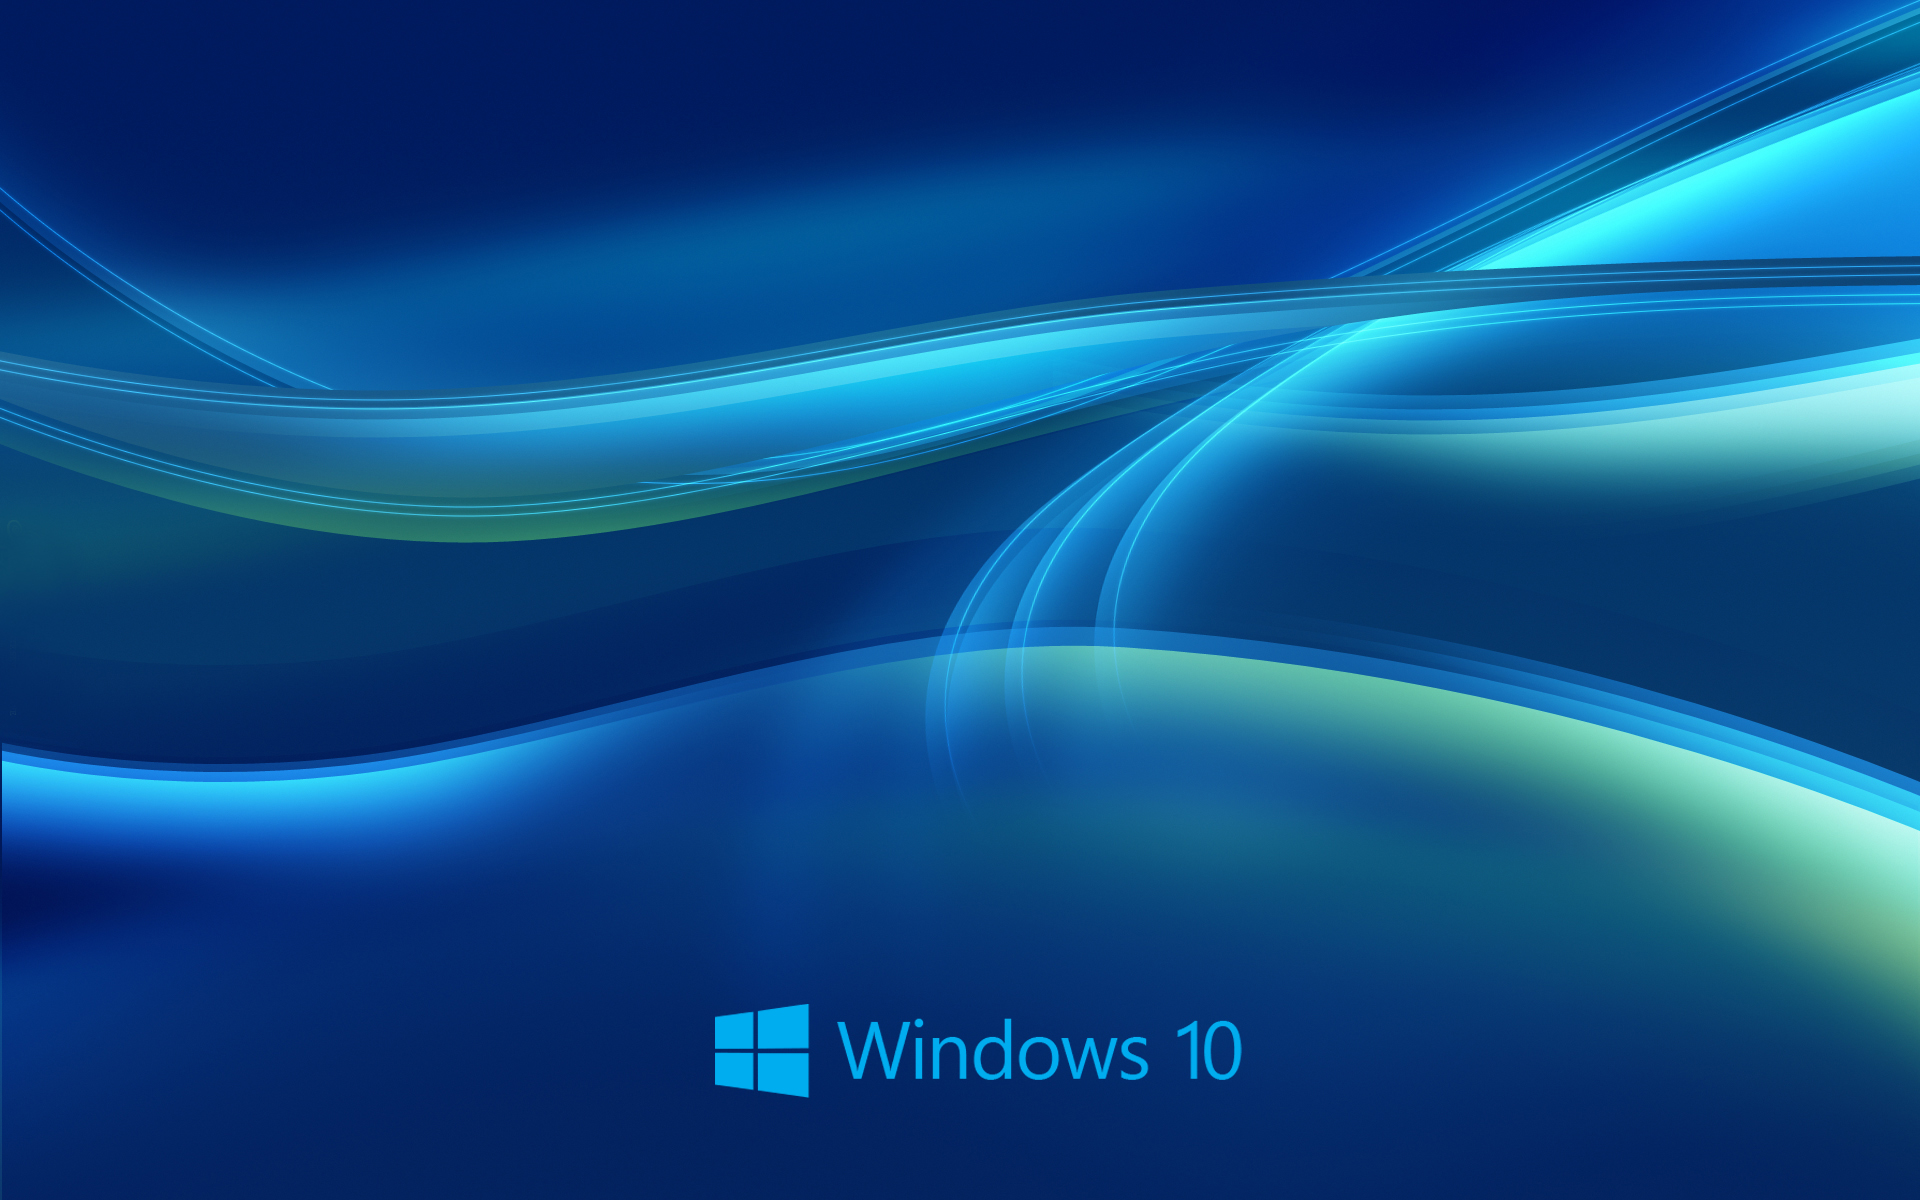 httpwindows10freeorgwindows 10 logo wallpaper and theme packhtml 1920x1200